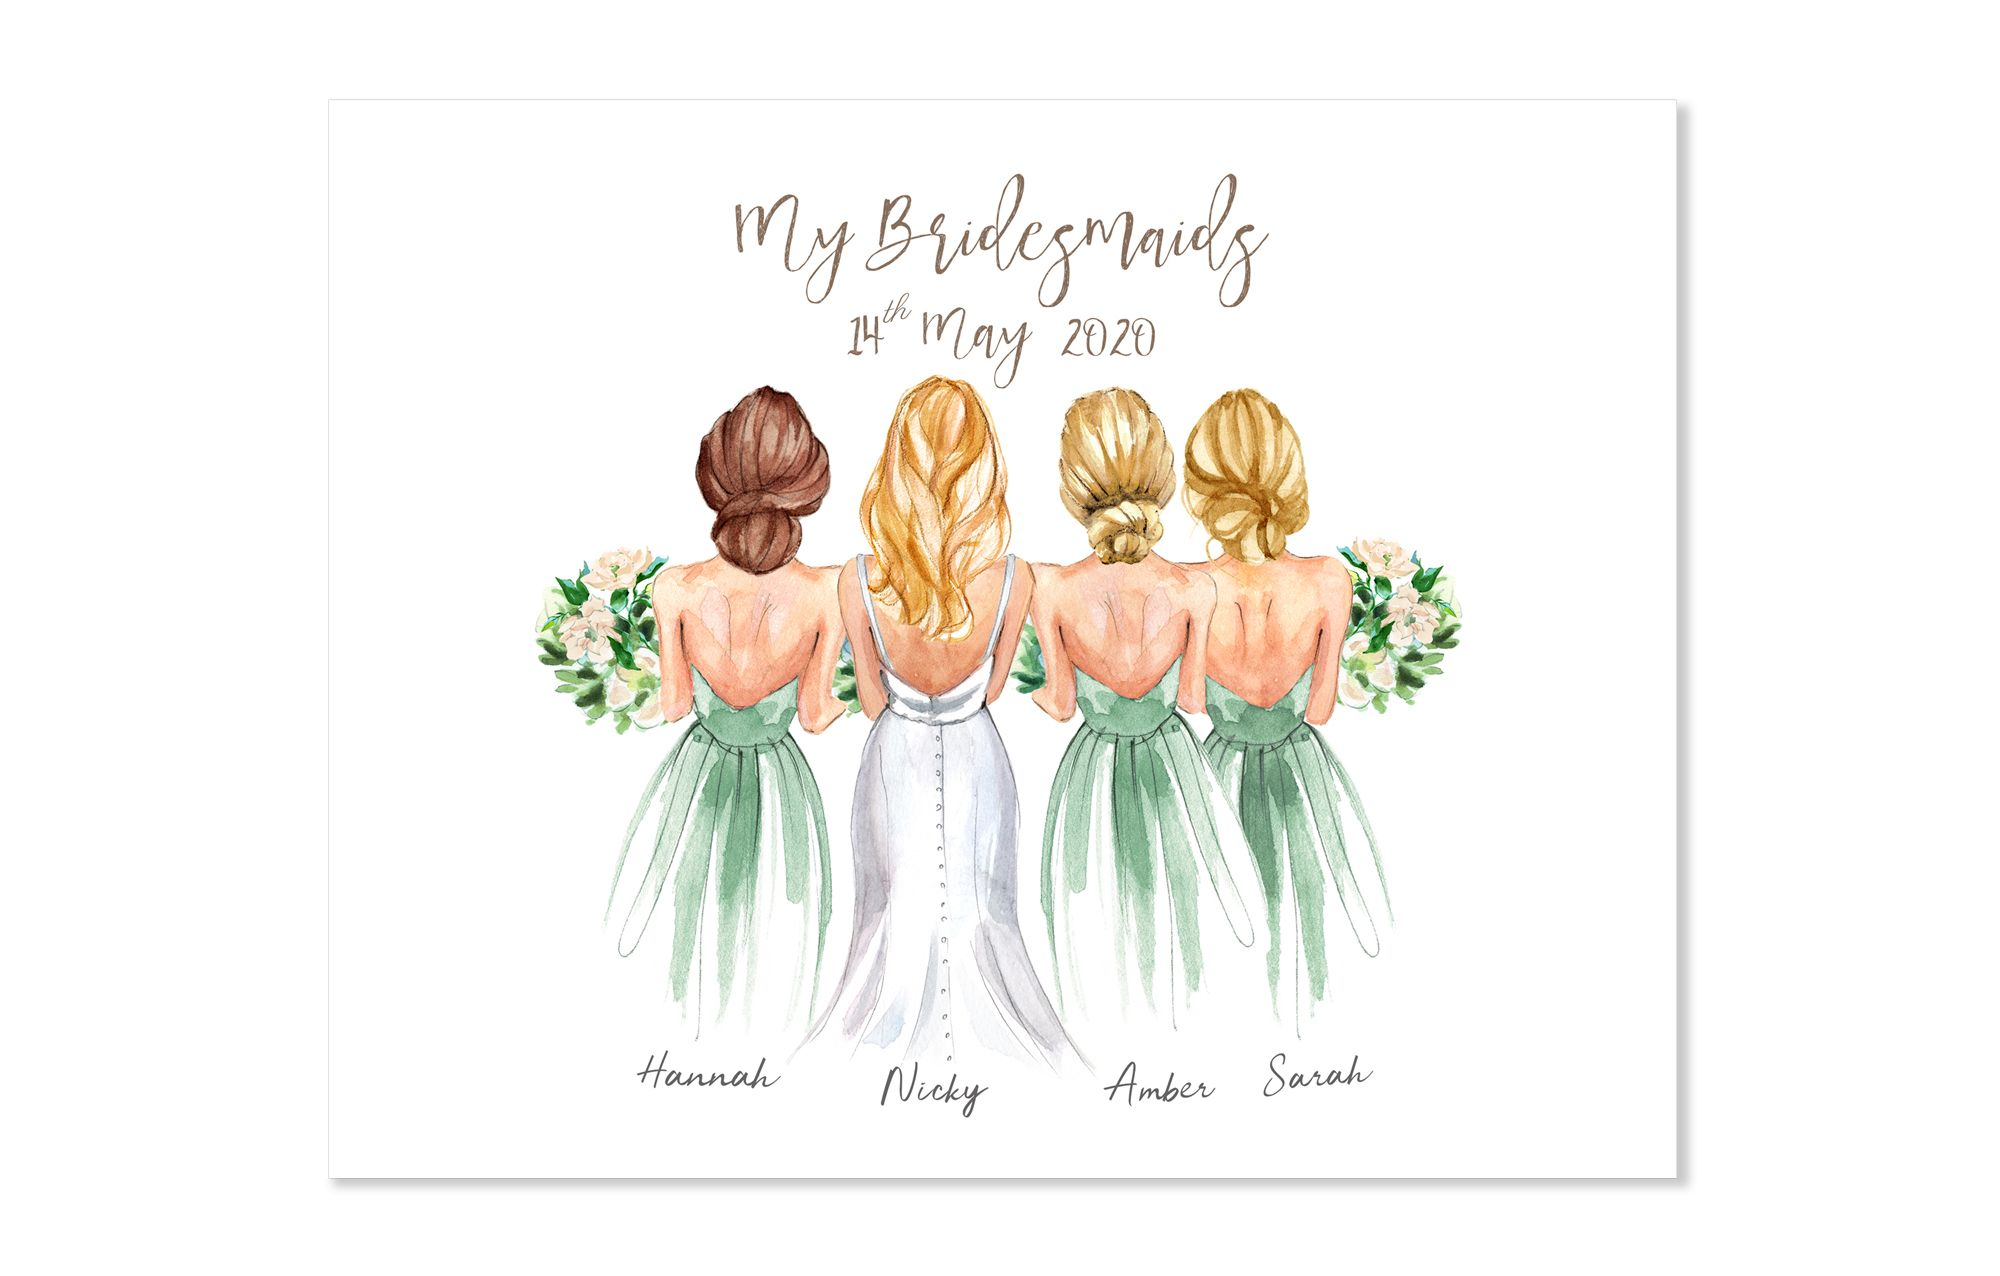 Customized Bridesmaids Gift Gifts For Bridesmaids Bridesmaid Gift Ideas Bride Gifts Gifts For Bride Wedding Favour Bridesmaids Print In 2020 Graduation Gifts For Best Friend Graduation Gifts For Friends Customized Bridesmaid Gifts